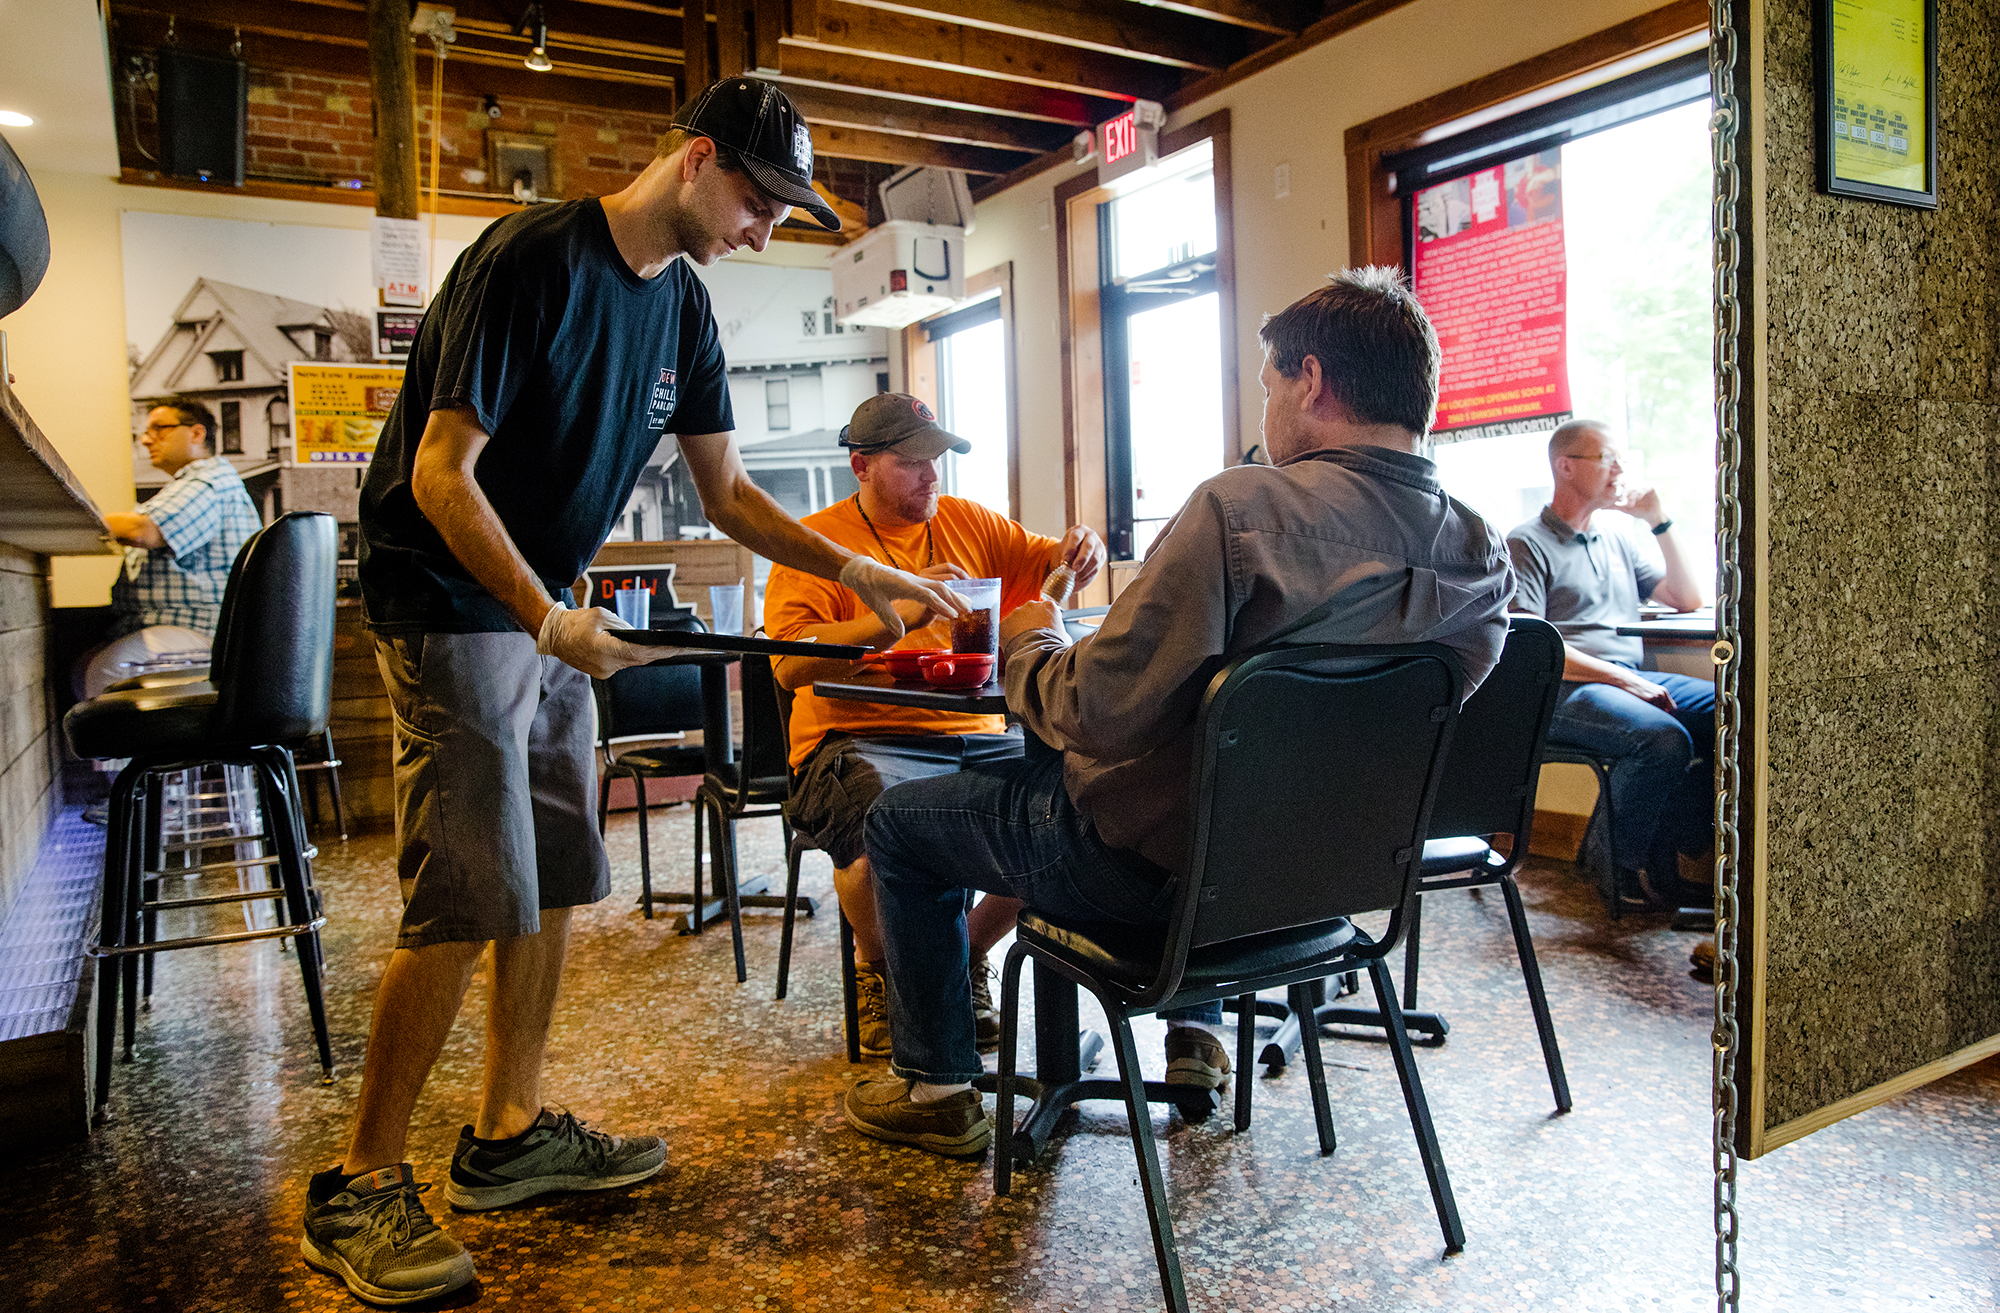 Nik Lalley serves customers Justin Metelco, left, and Cory Taylor during the last day of operation for the Dew Chilli Parlor's Fifth Street location Friday, Aug. 24, 2018. The business will continue to operate at two other Springfield locations. [Ted Schurter/The State Journal-Register]